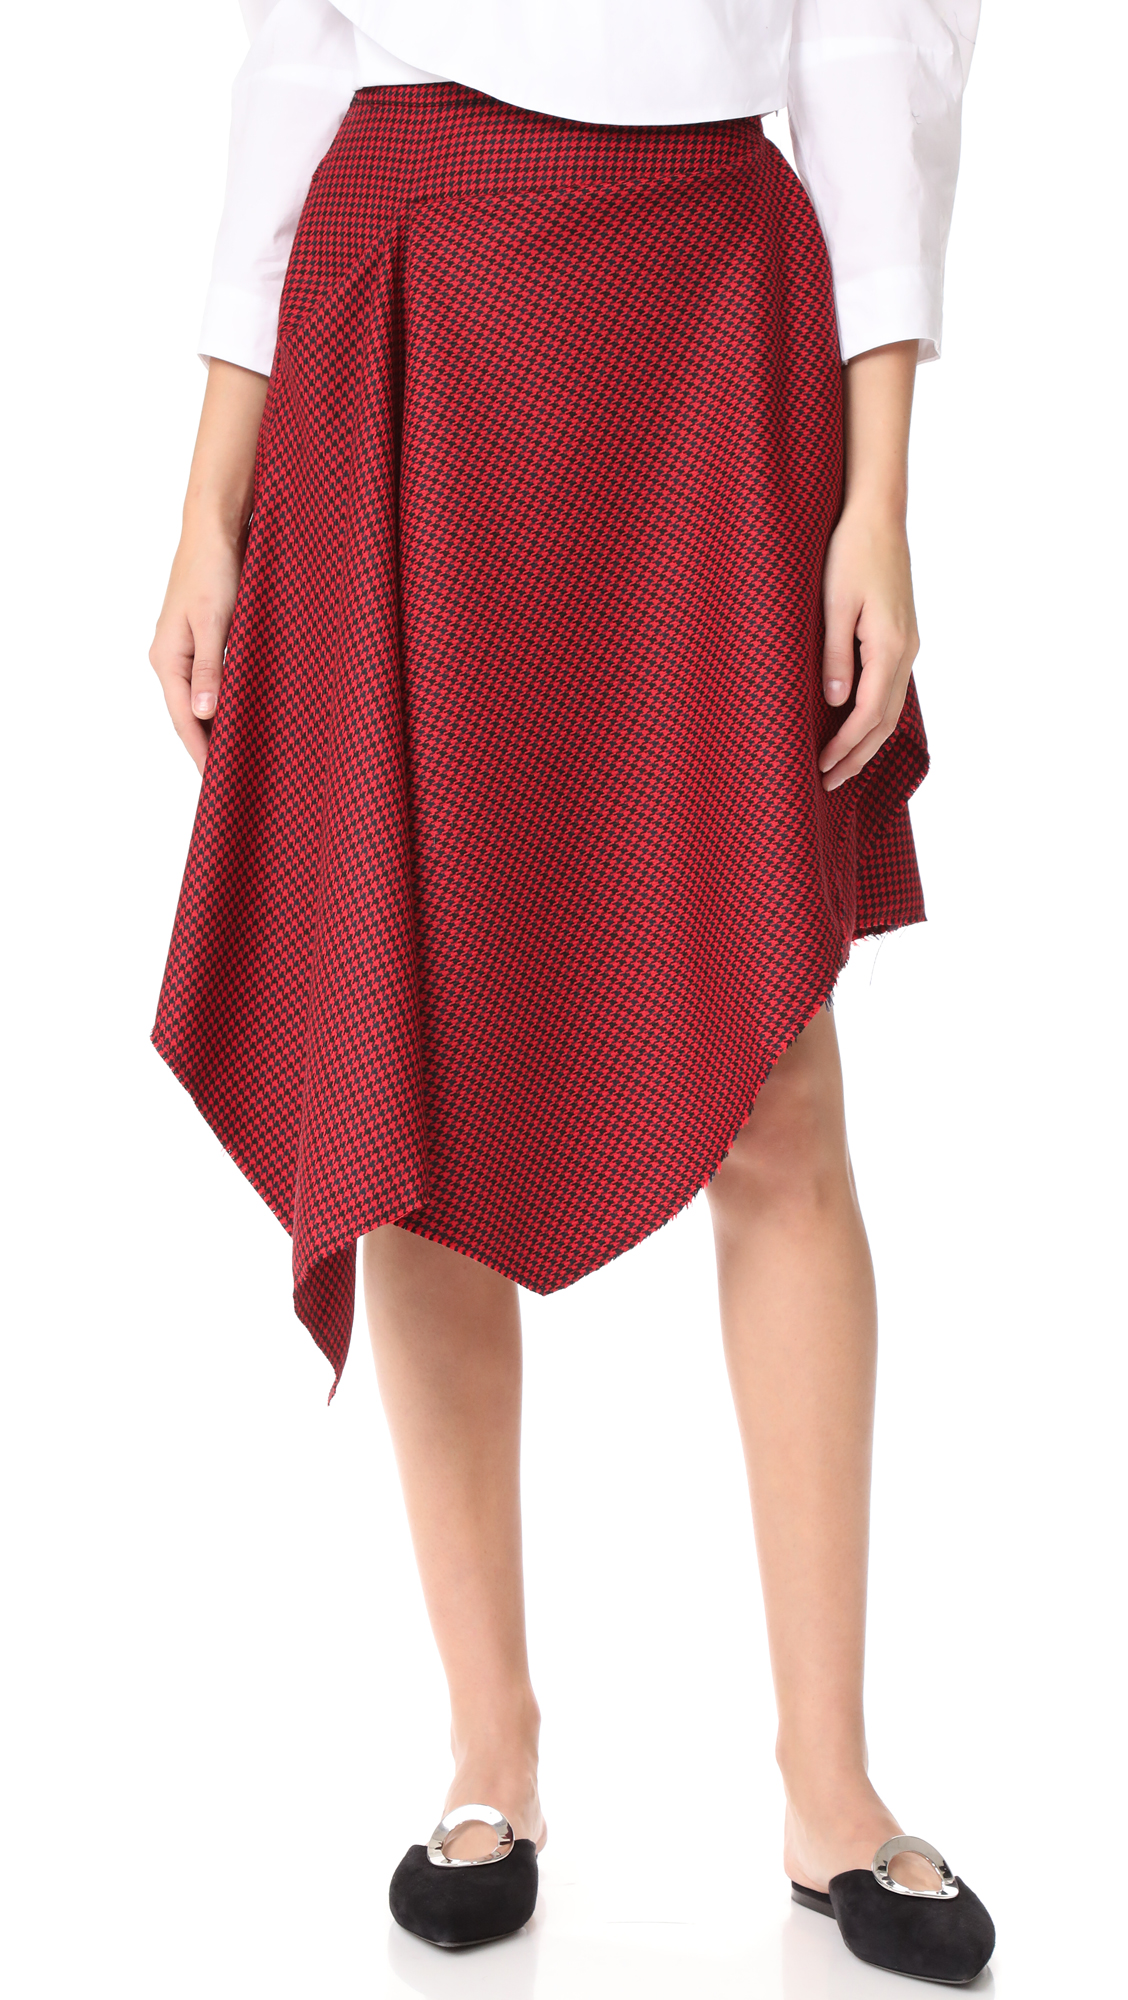 Marques Almeida Deconstructed Drape Front Skirt - Red/Black Houndstooth